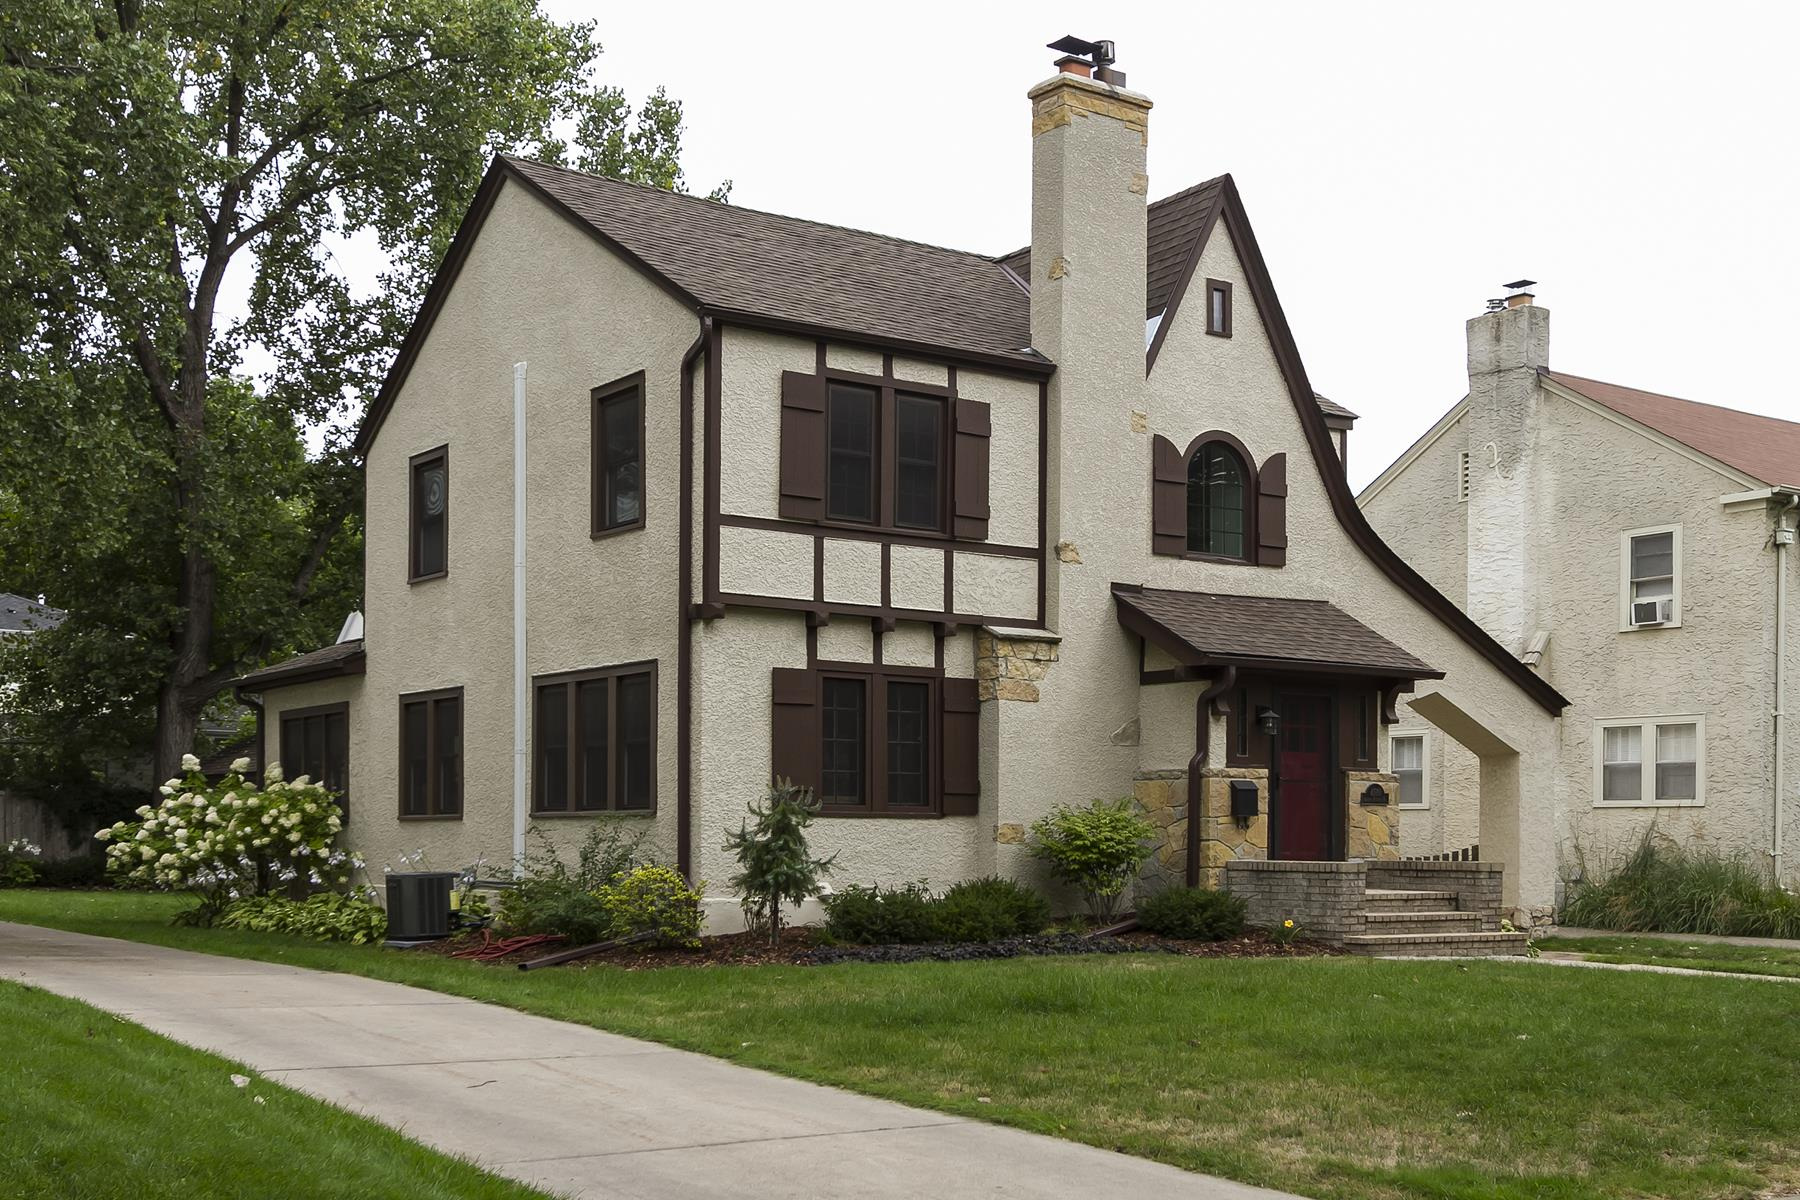 Single Family Home for Sale at 4510 Arden Avenue Edina, Minnesota, 55424 United States